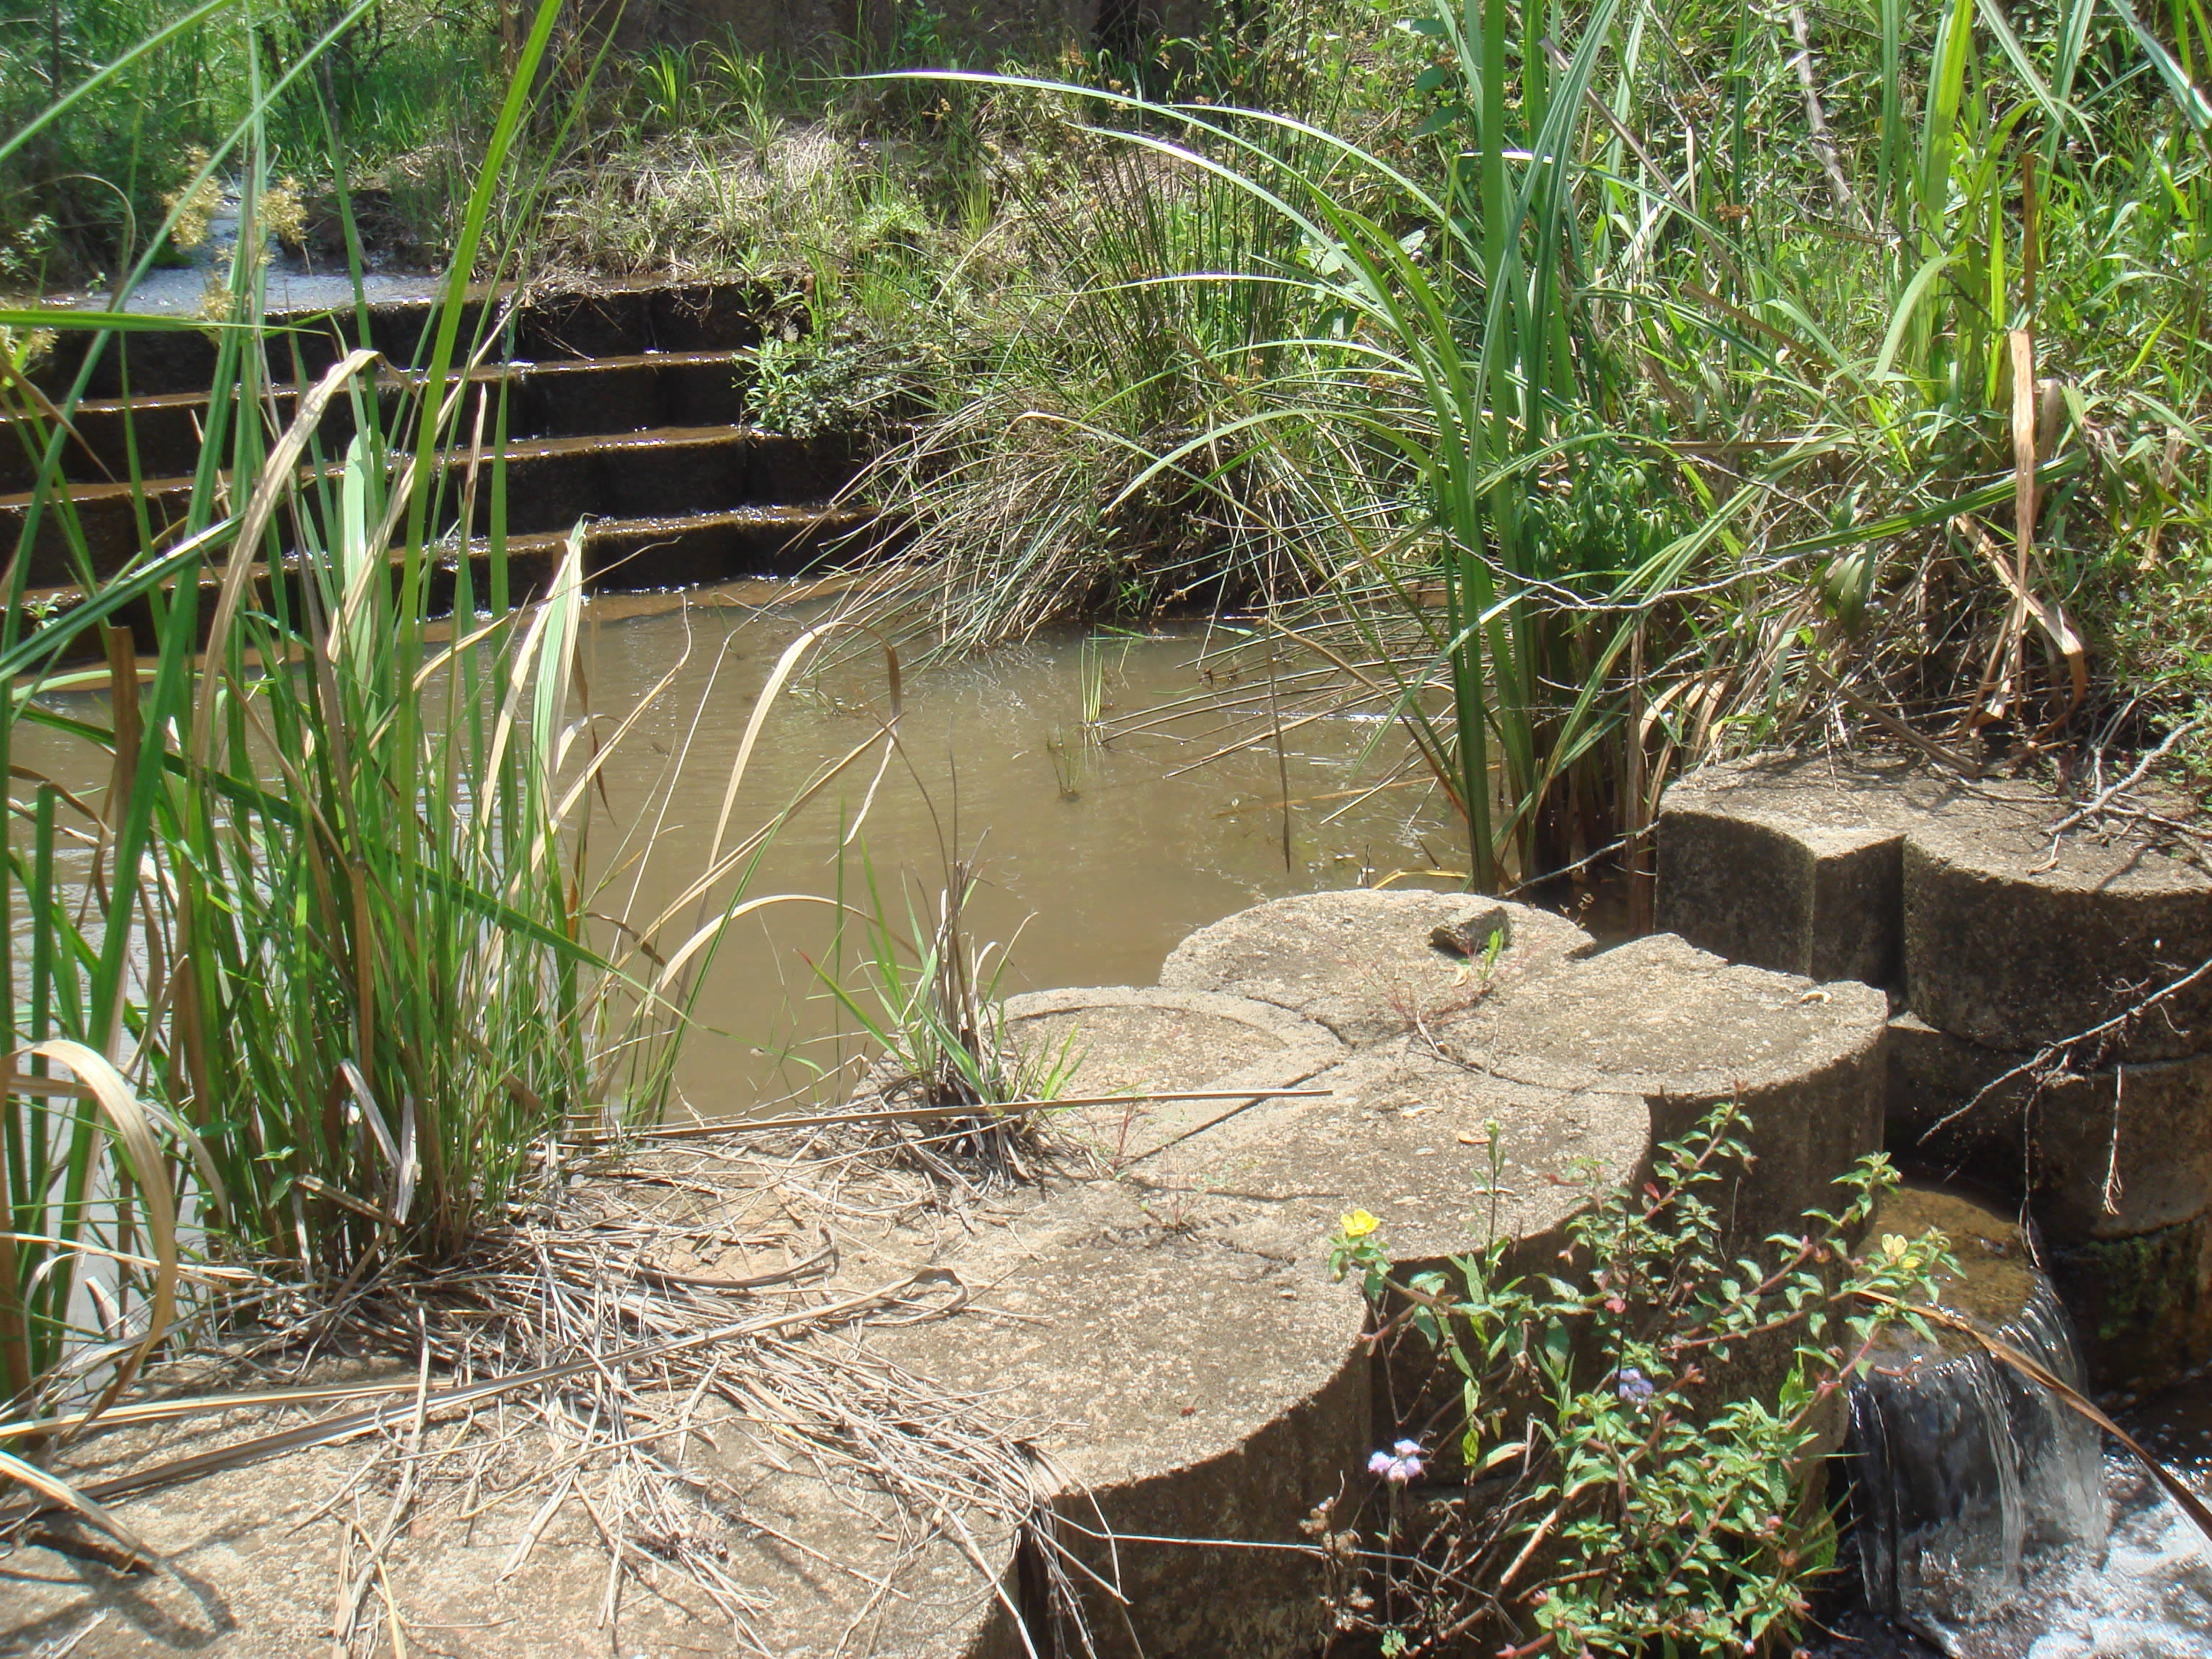 Weir and stilling basin – close-up